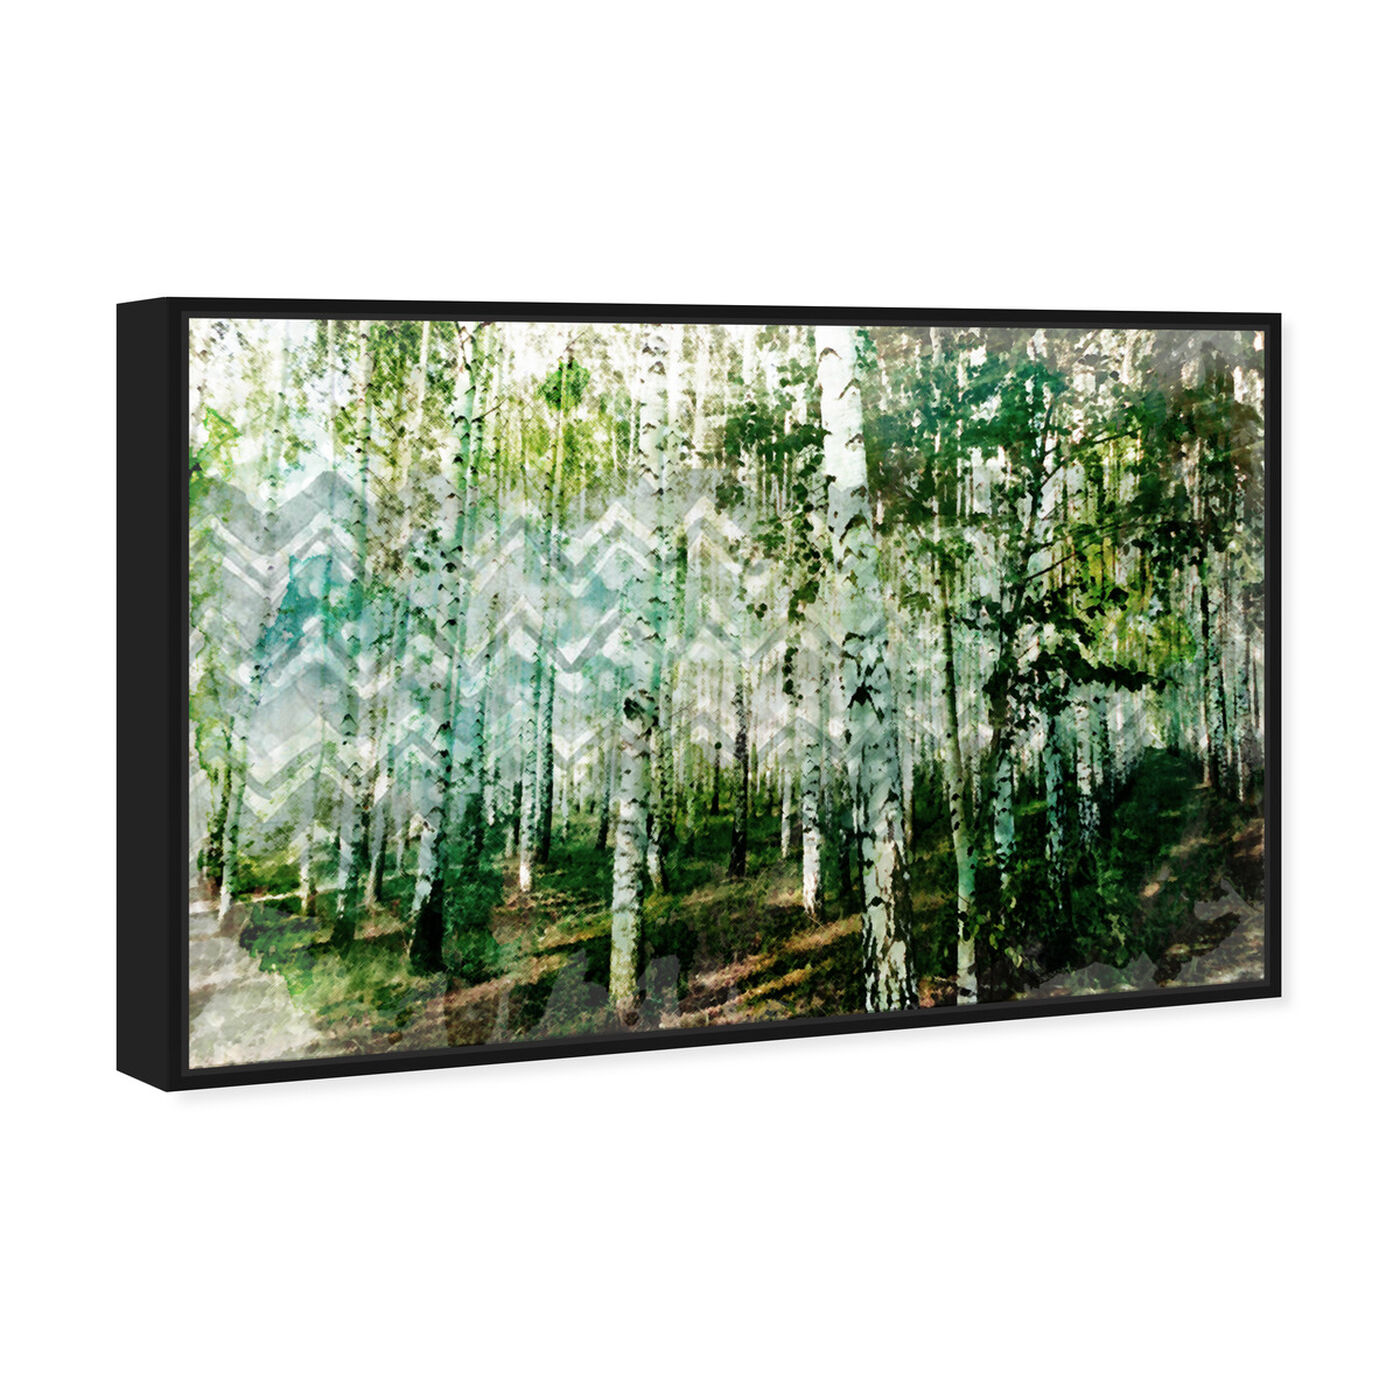 Angled view of Madera featuring nature and landscape and forest landscapes art.